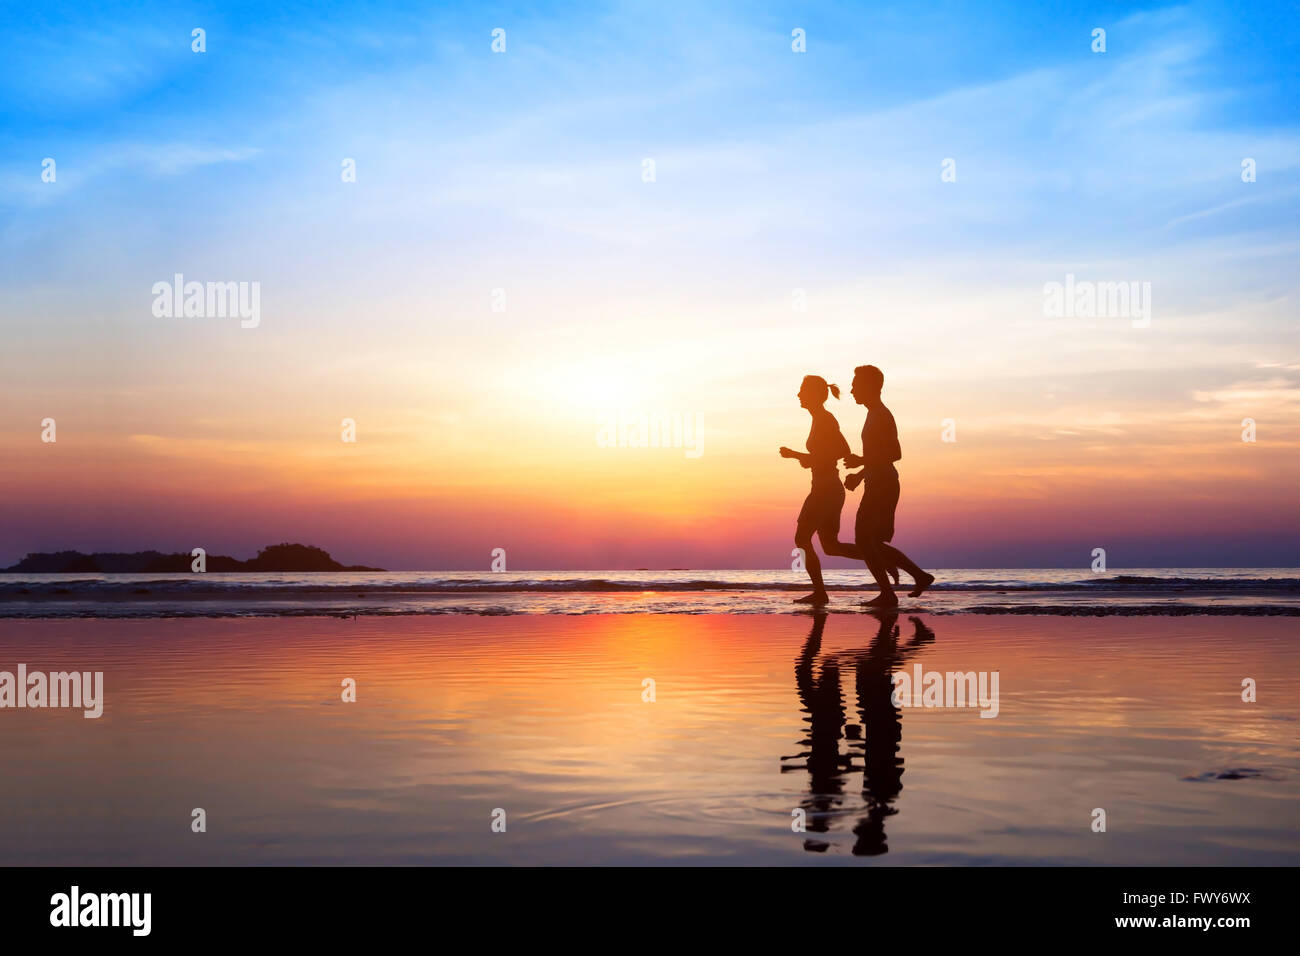 workout background, two people jogging on the beach at sunset, runners silhouettes, healthy lifestyle concept Stock Foto